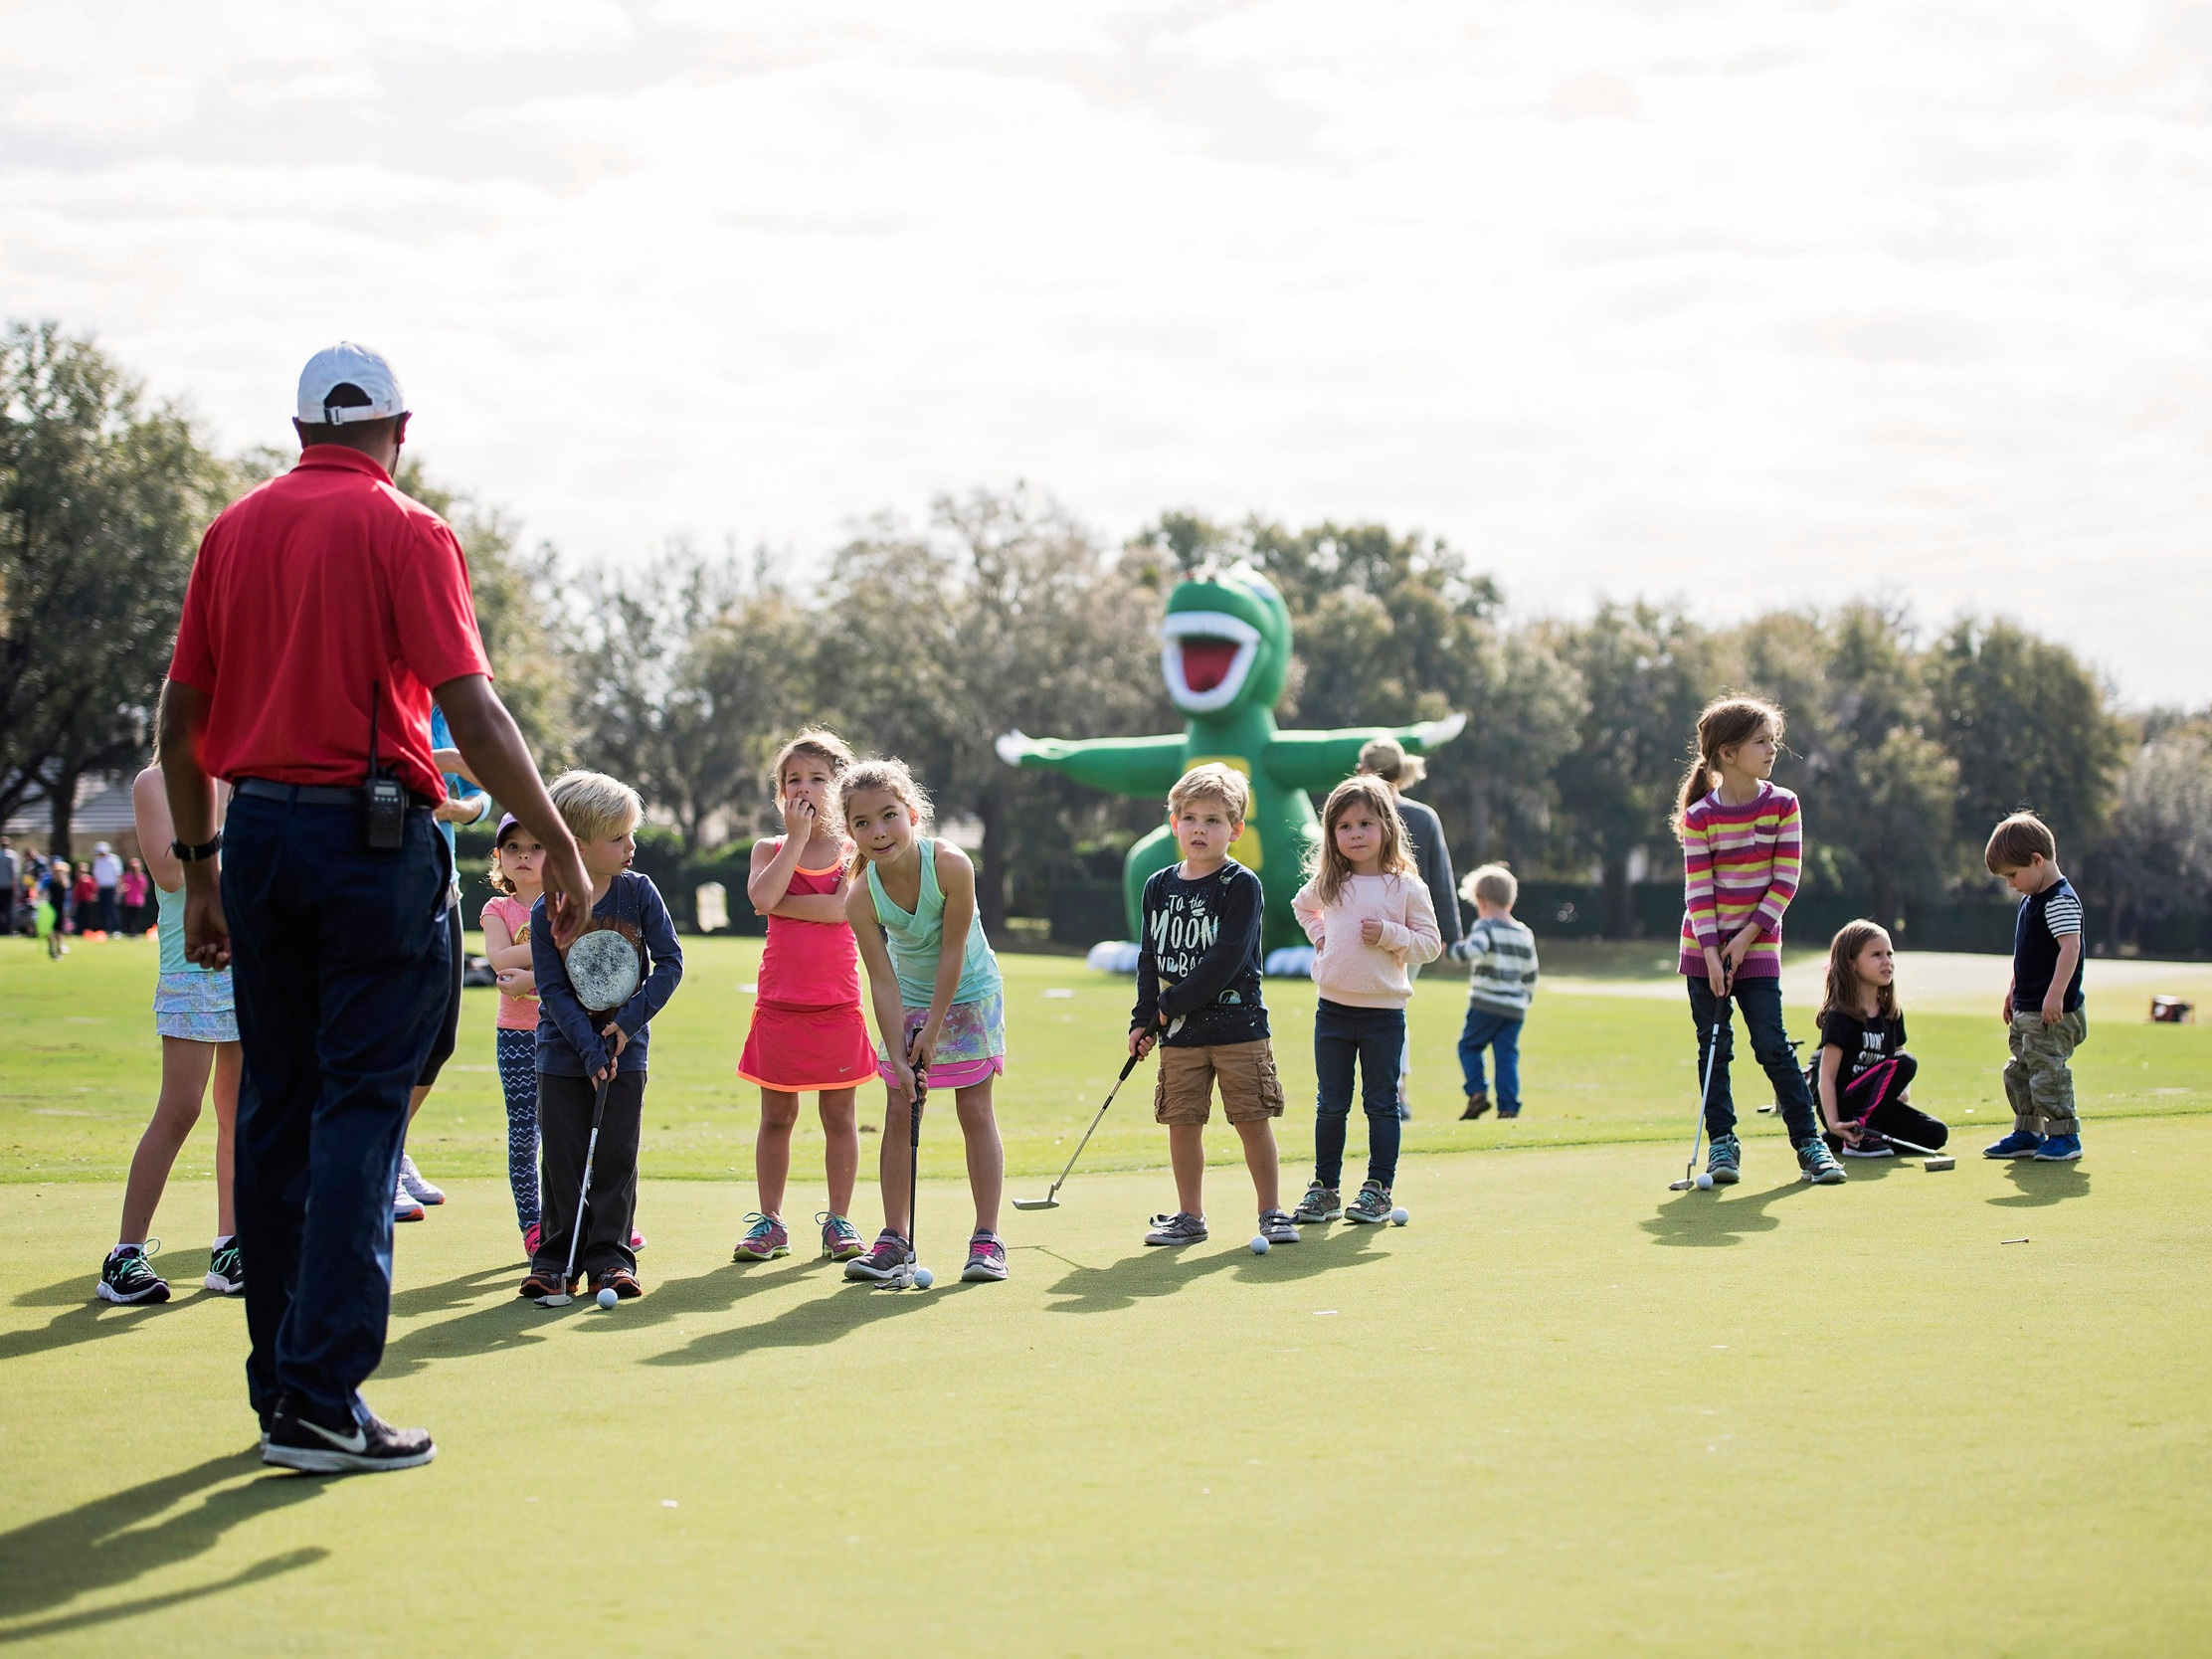 YOUTH PROGRAMS - Year-round activities for youth and families, from holiday celebrations and after-school programs to the renowned summer Camp Isleworth, help create special moments where life's greatest gifts can be enjoyed.